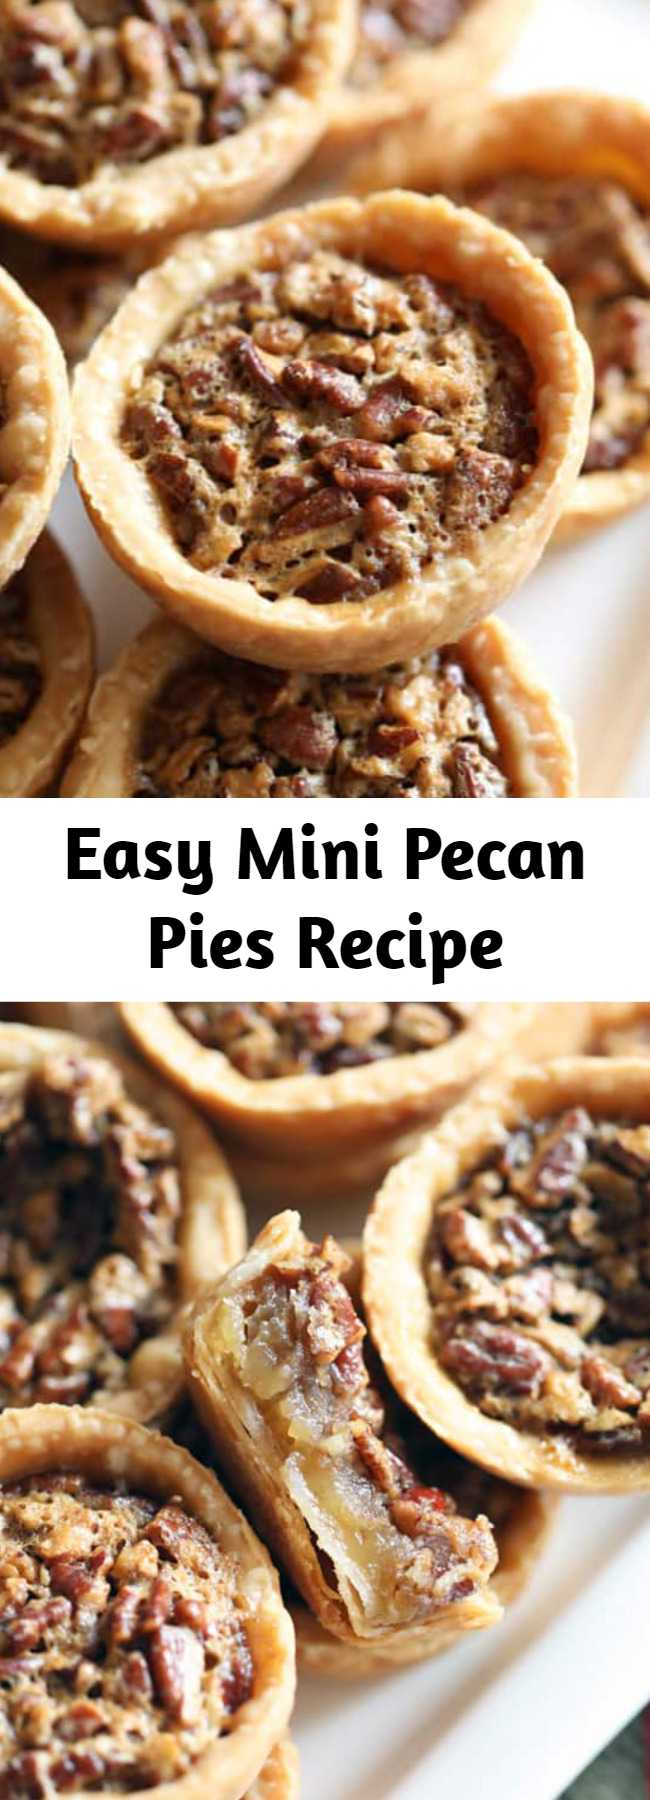 Easy Mini Pecan Pies Recipe - These Mini Pecan Pies have all the flavors of traditional pecan pie, but in mini form and individual servings. Super easy and great for entertaining! #pecanpie #minipecanpies #minipecanpieseasy #minipecanpiesinamuffintin